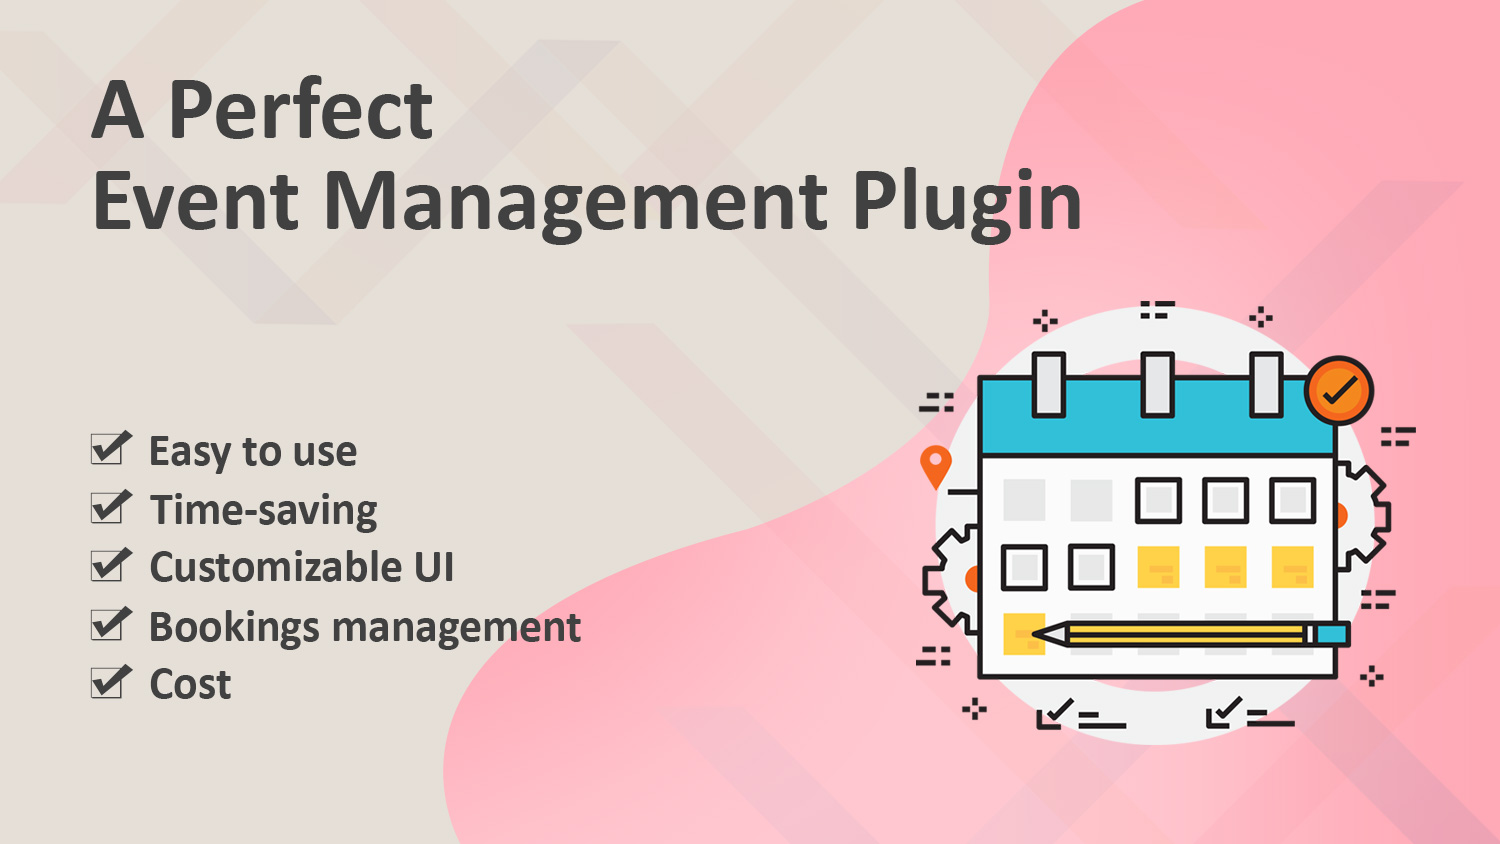 A perfect event management plugin